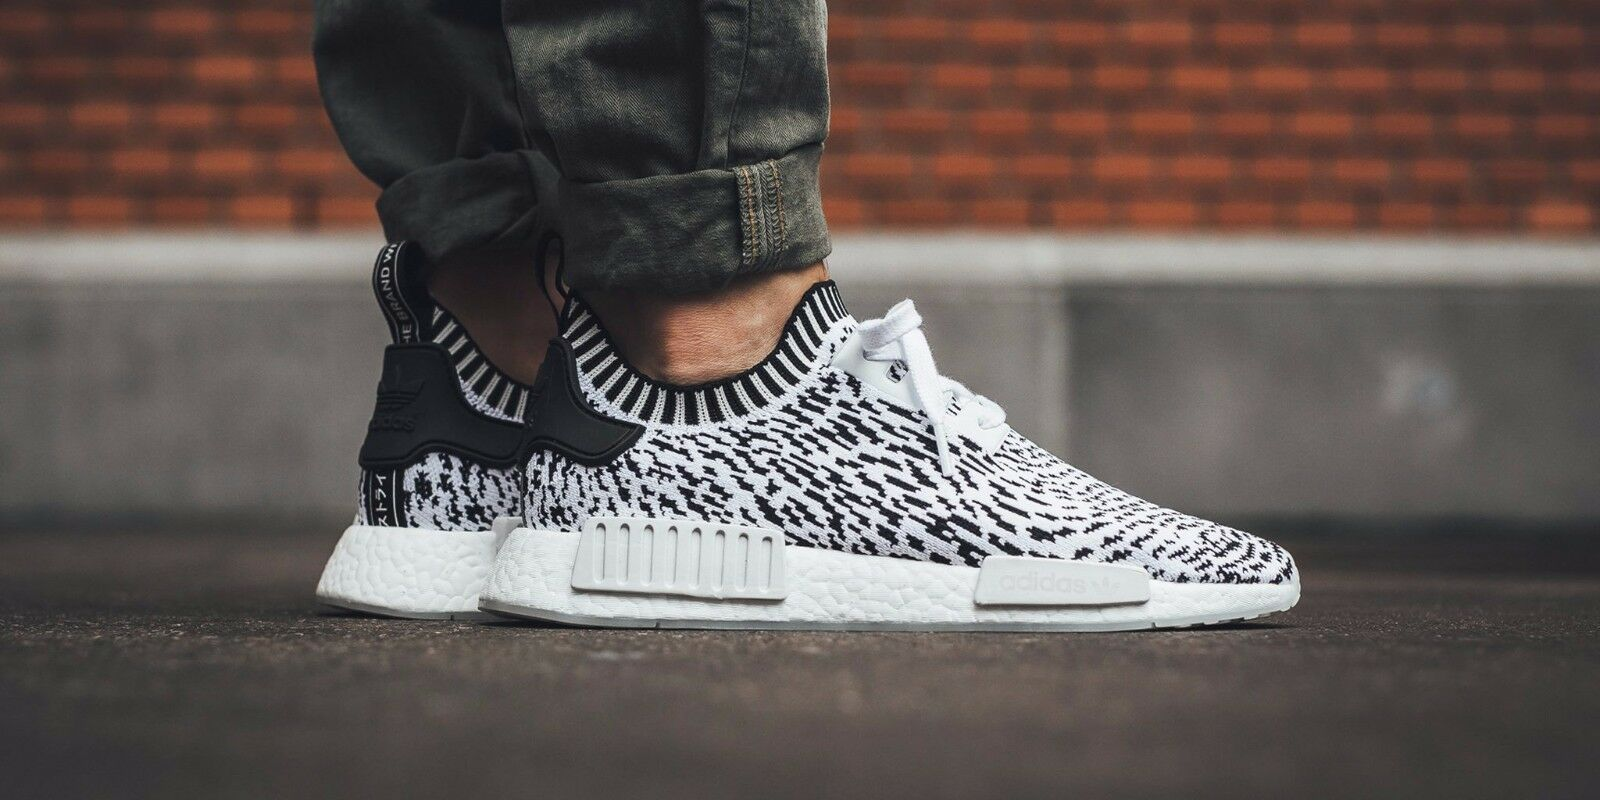 NMD R1 sashiko UK8.5 unopened